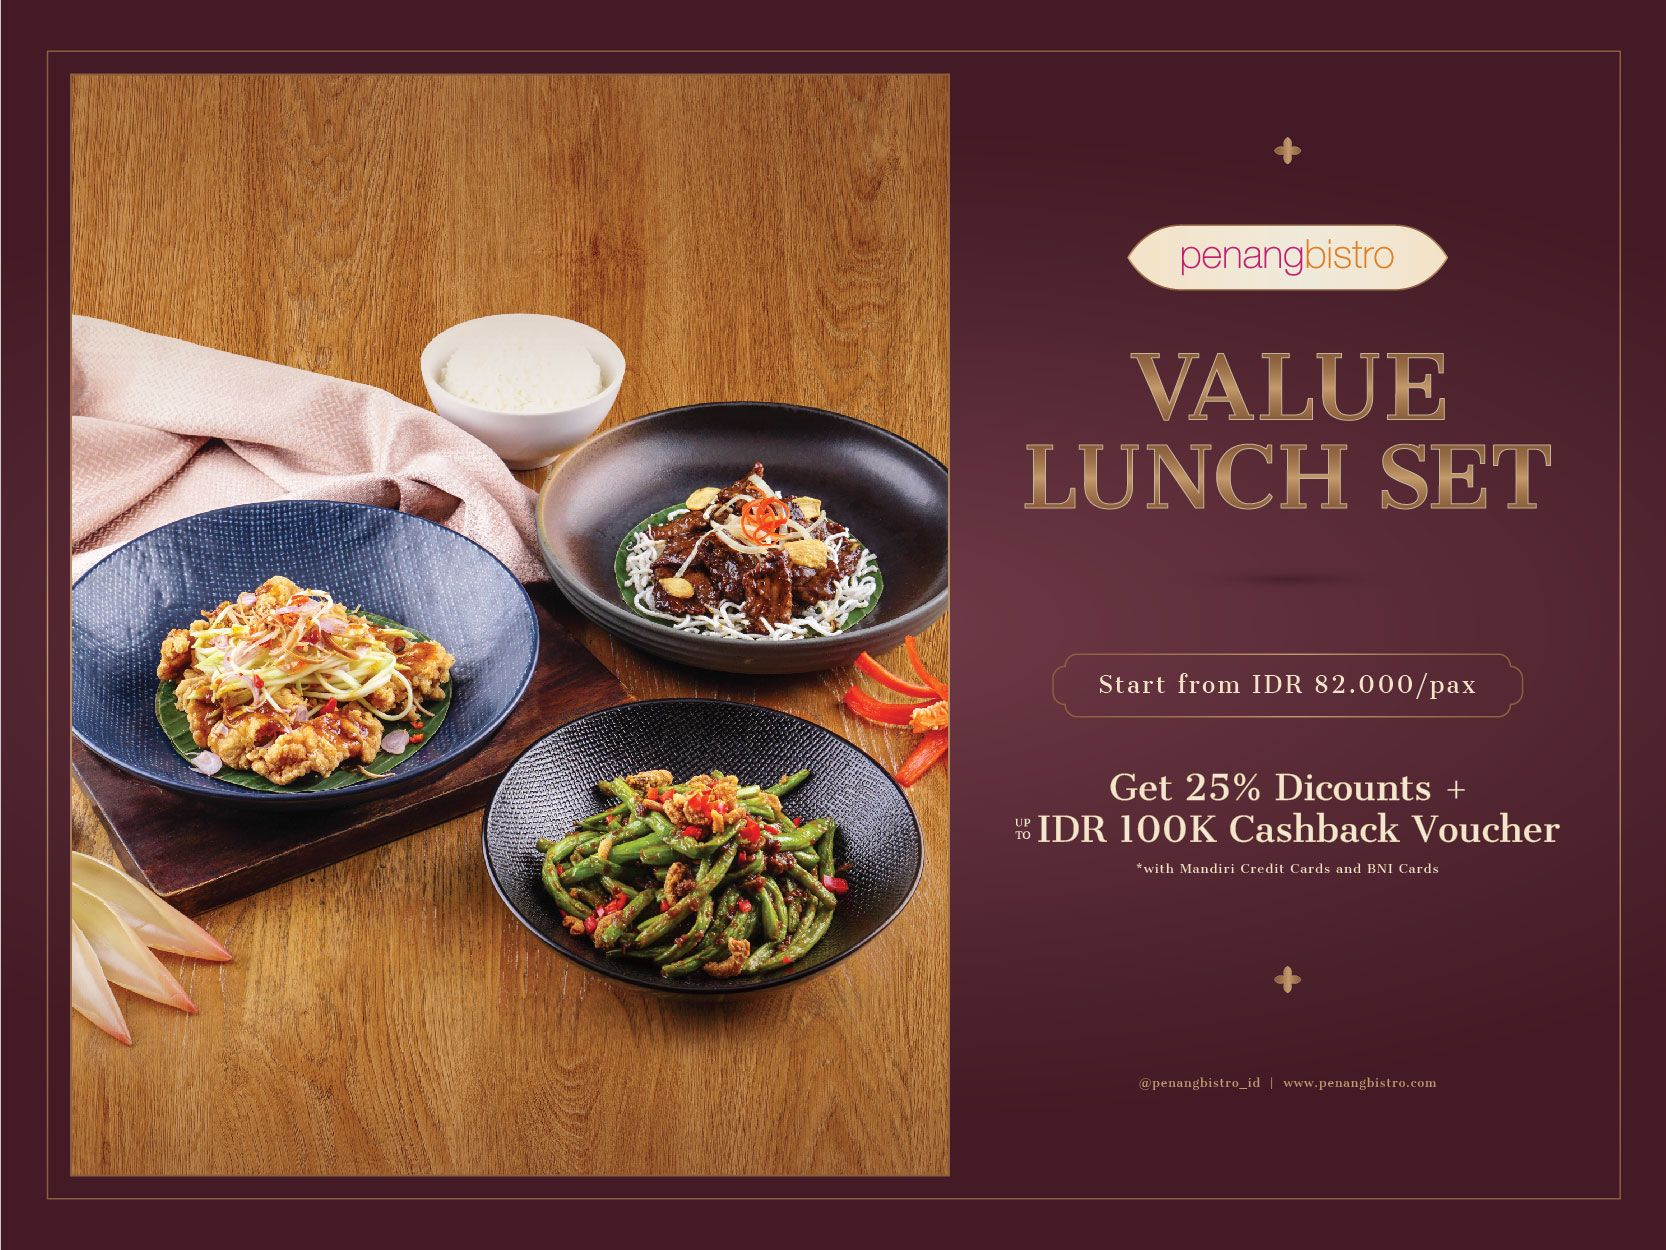 PENANG BISTRO VALUE LUNCH SET FOR 4 PAX image